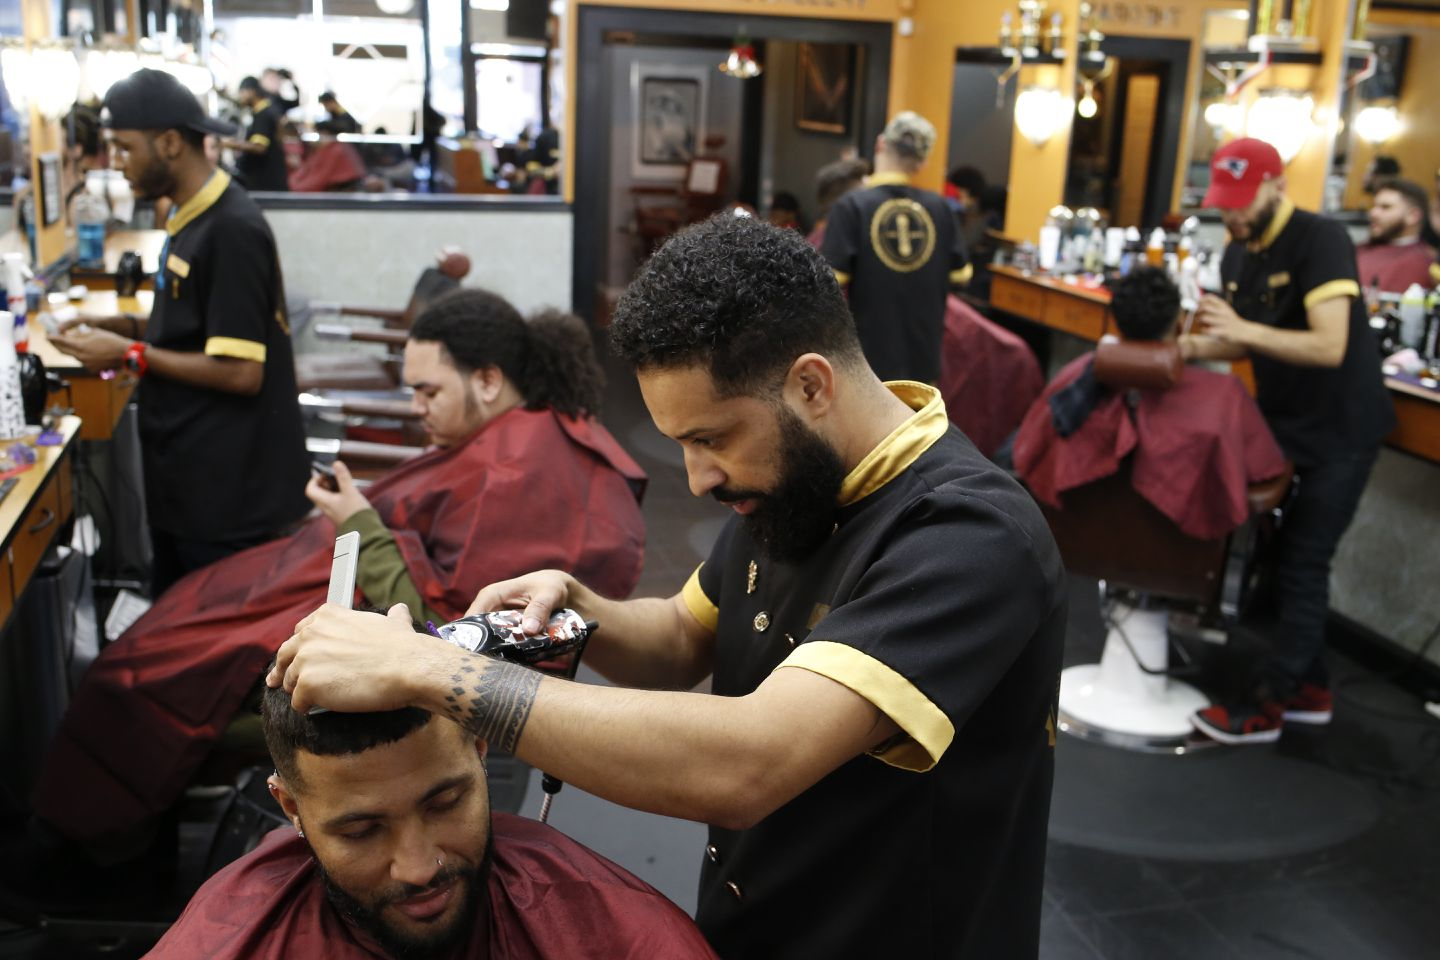 Revealing The Barbershop For What It Is A Black Man S Safe Space The Boston Globe